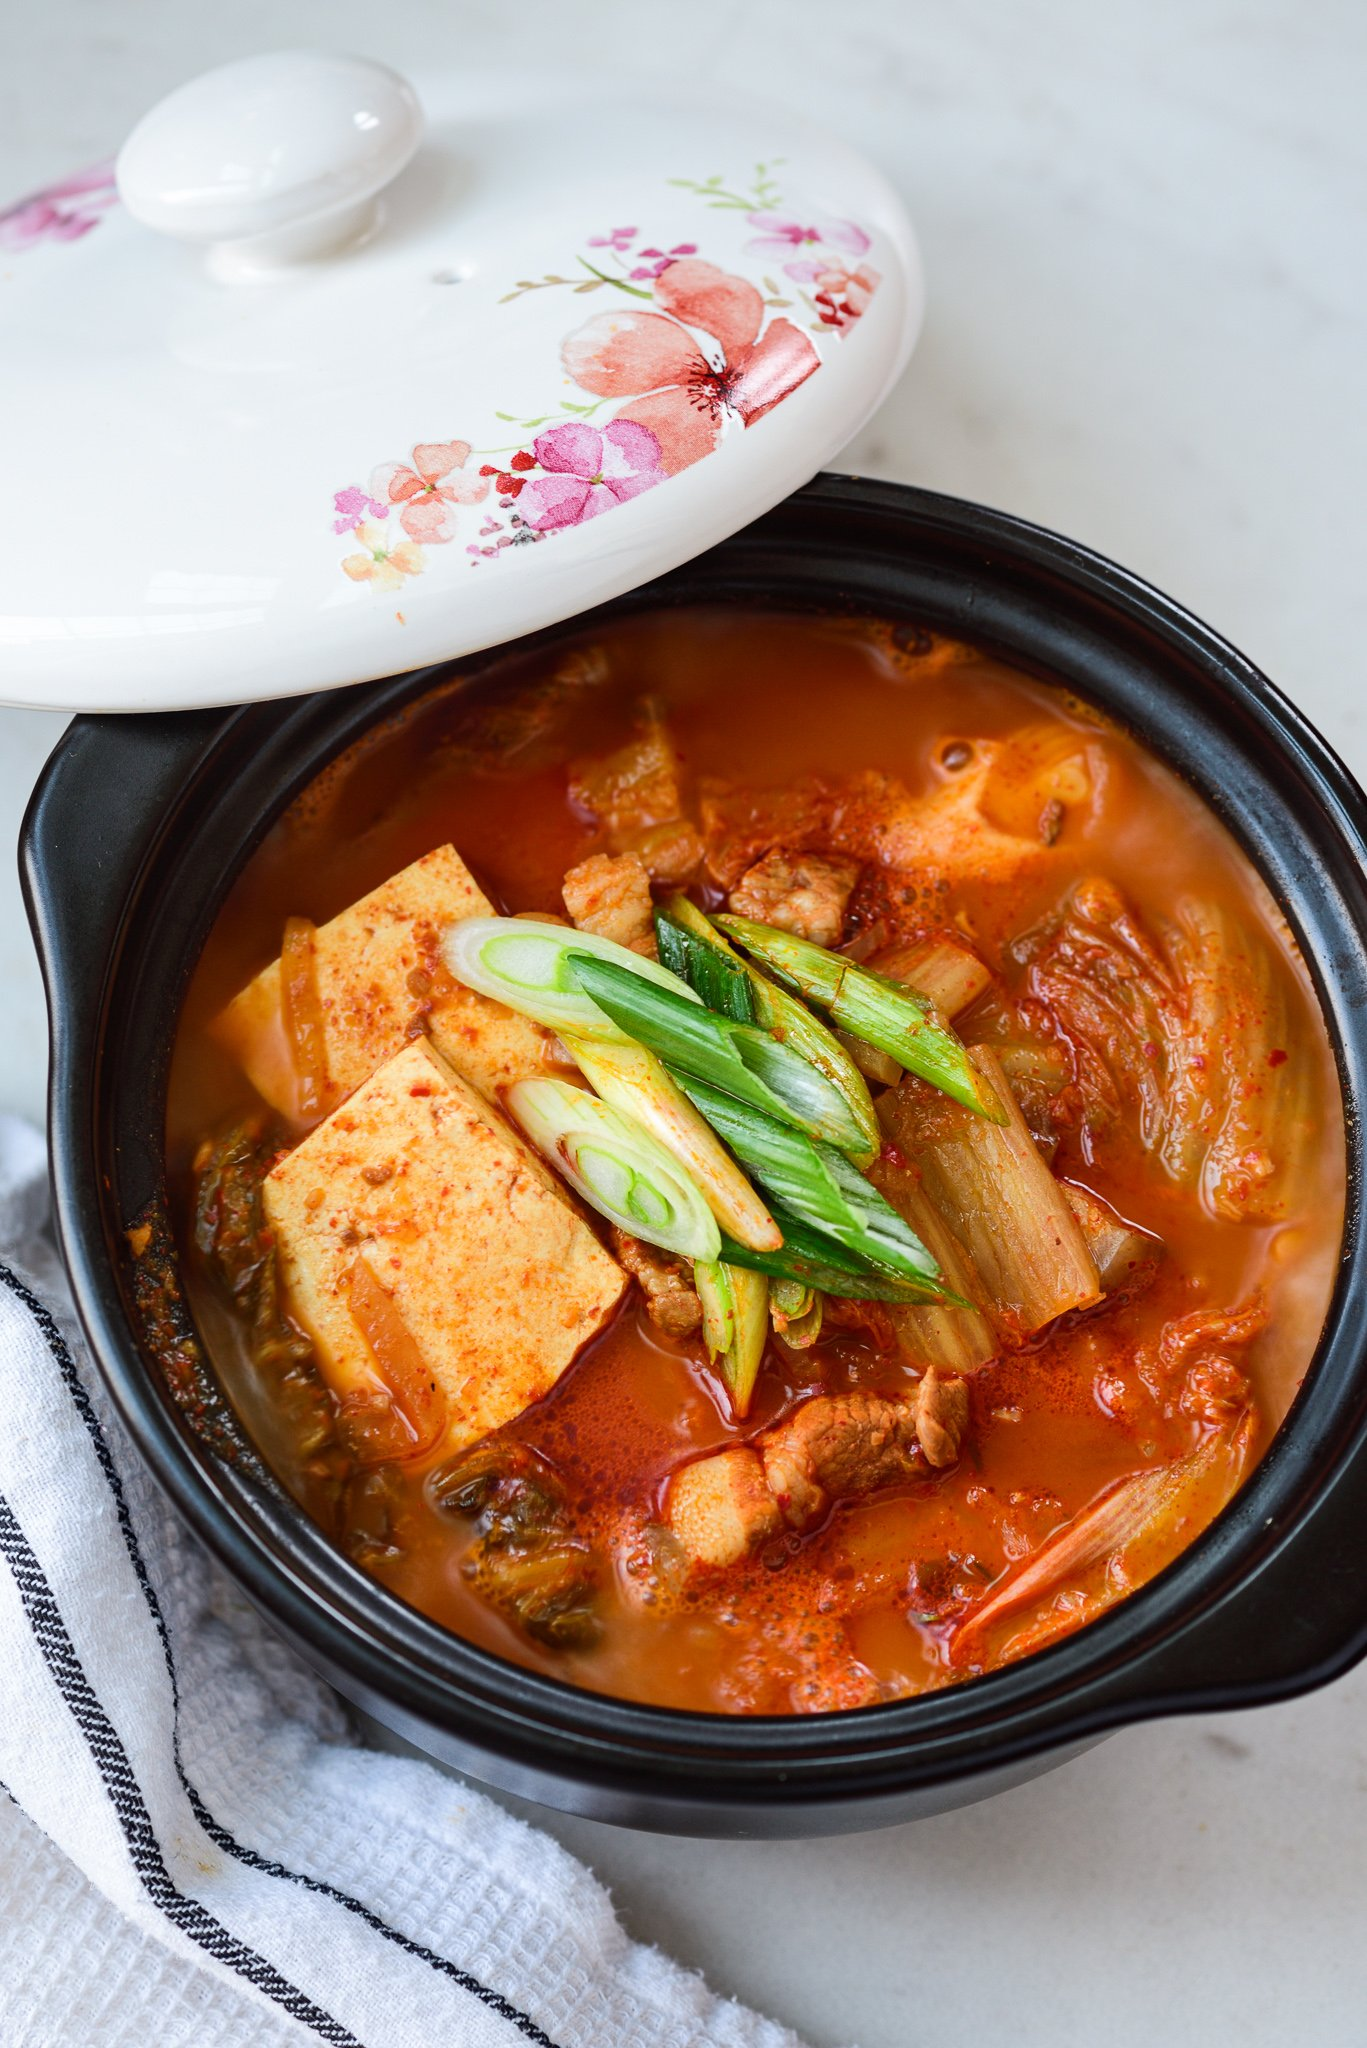 kimchi stew with tofu in an earthen pot with the lid laid on the side of the pot